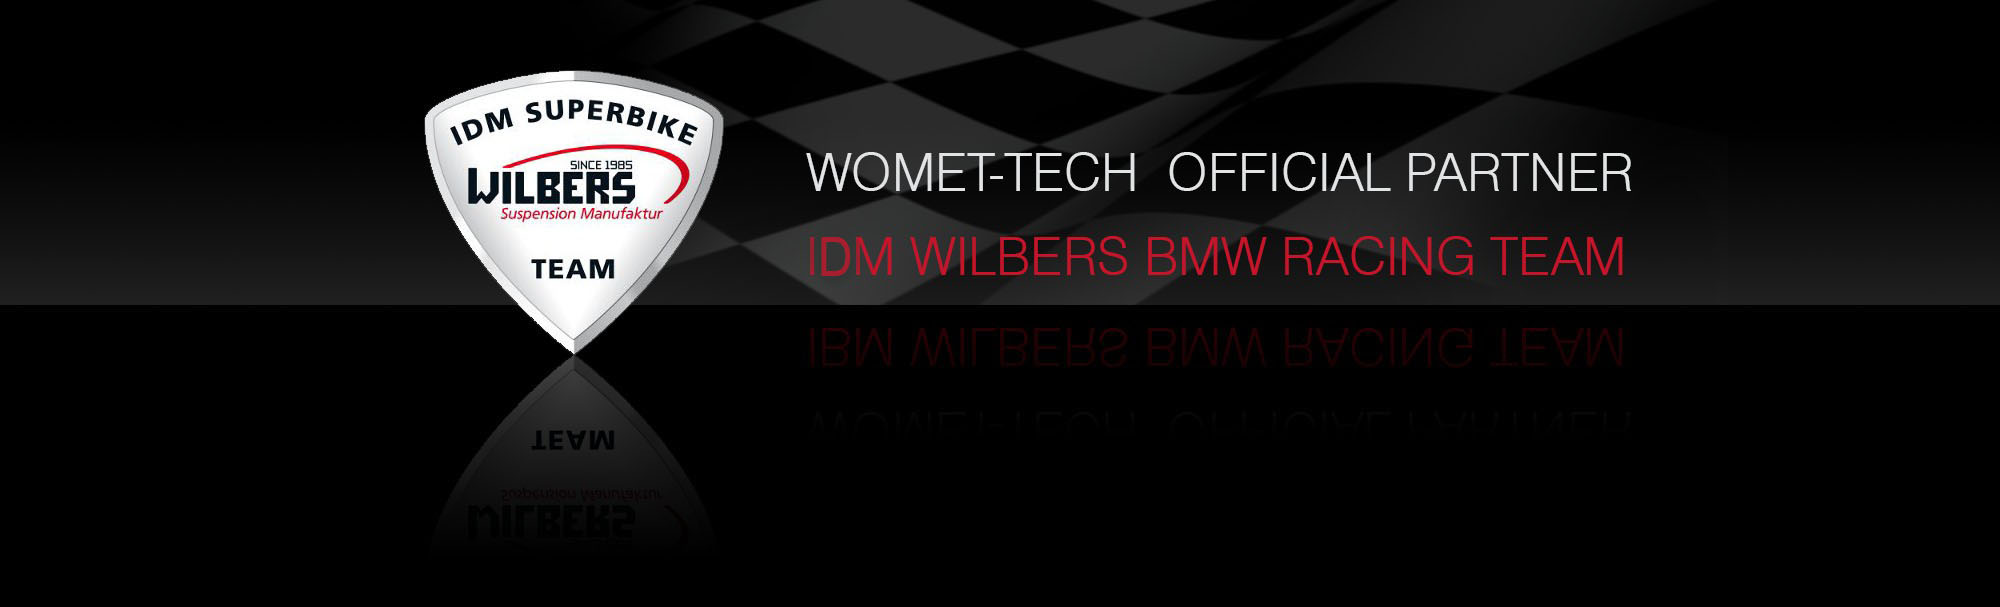 WOMET-TECH OFFICIAL PARTNER WILBERS BMW TEAM